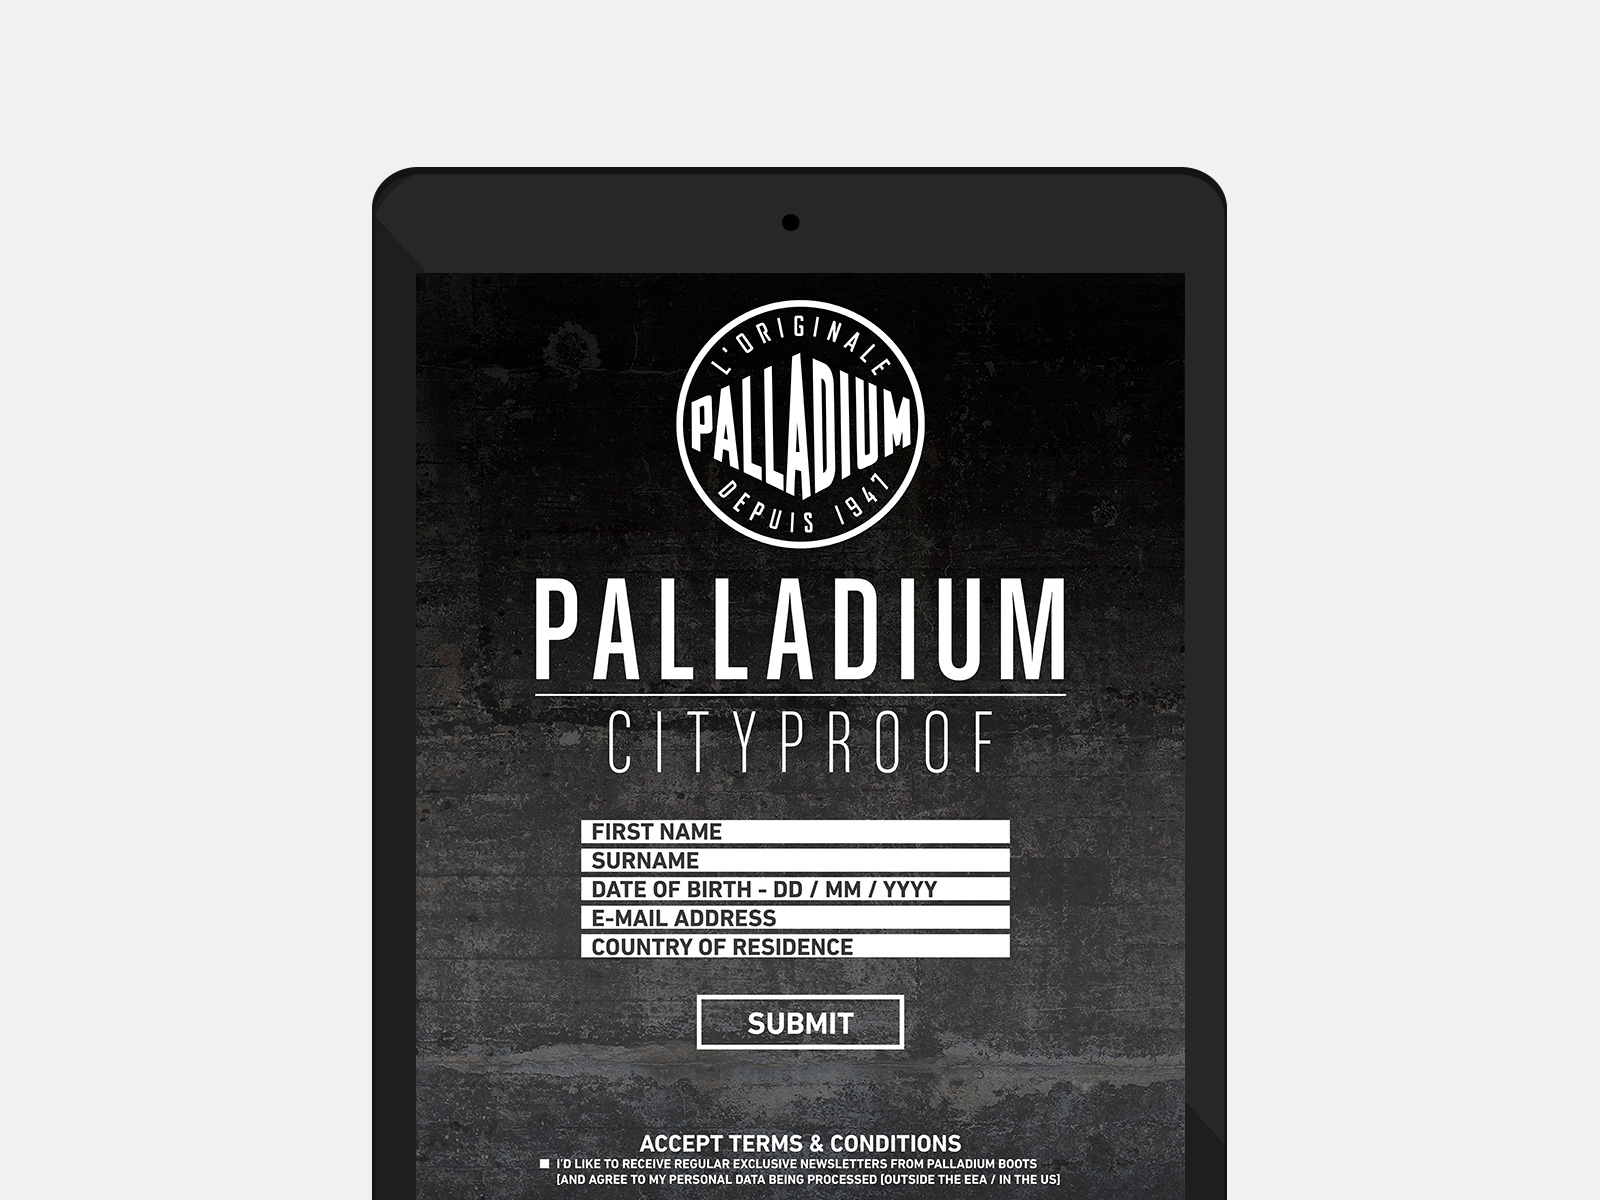 palladium-city-proof-win-action-tablet